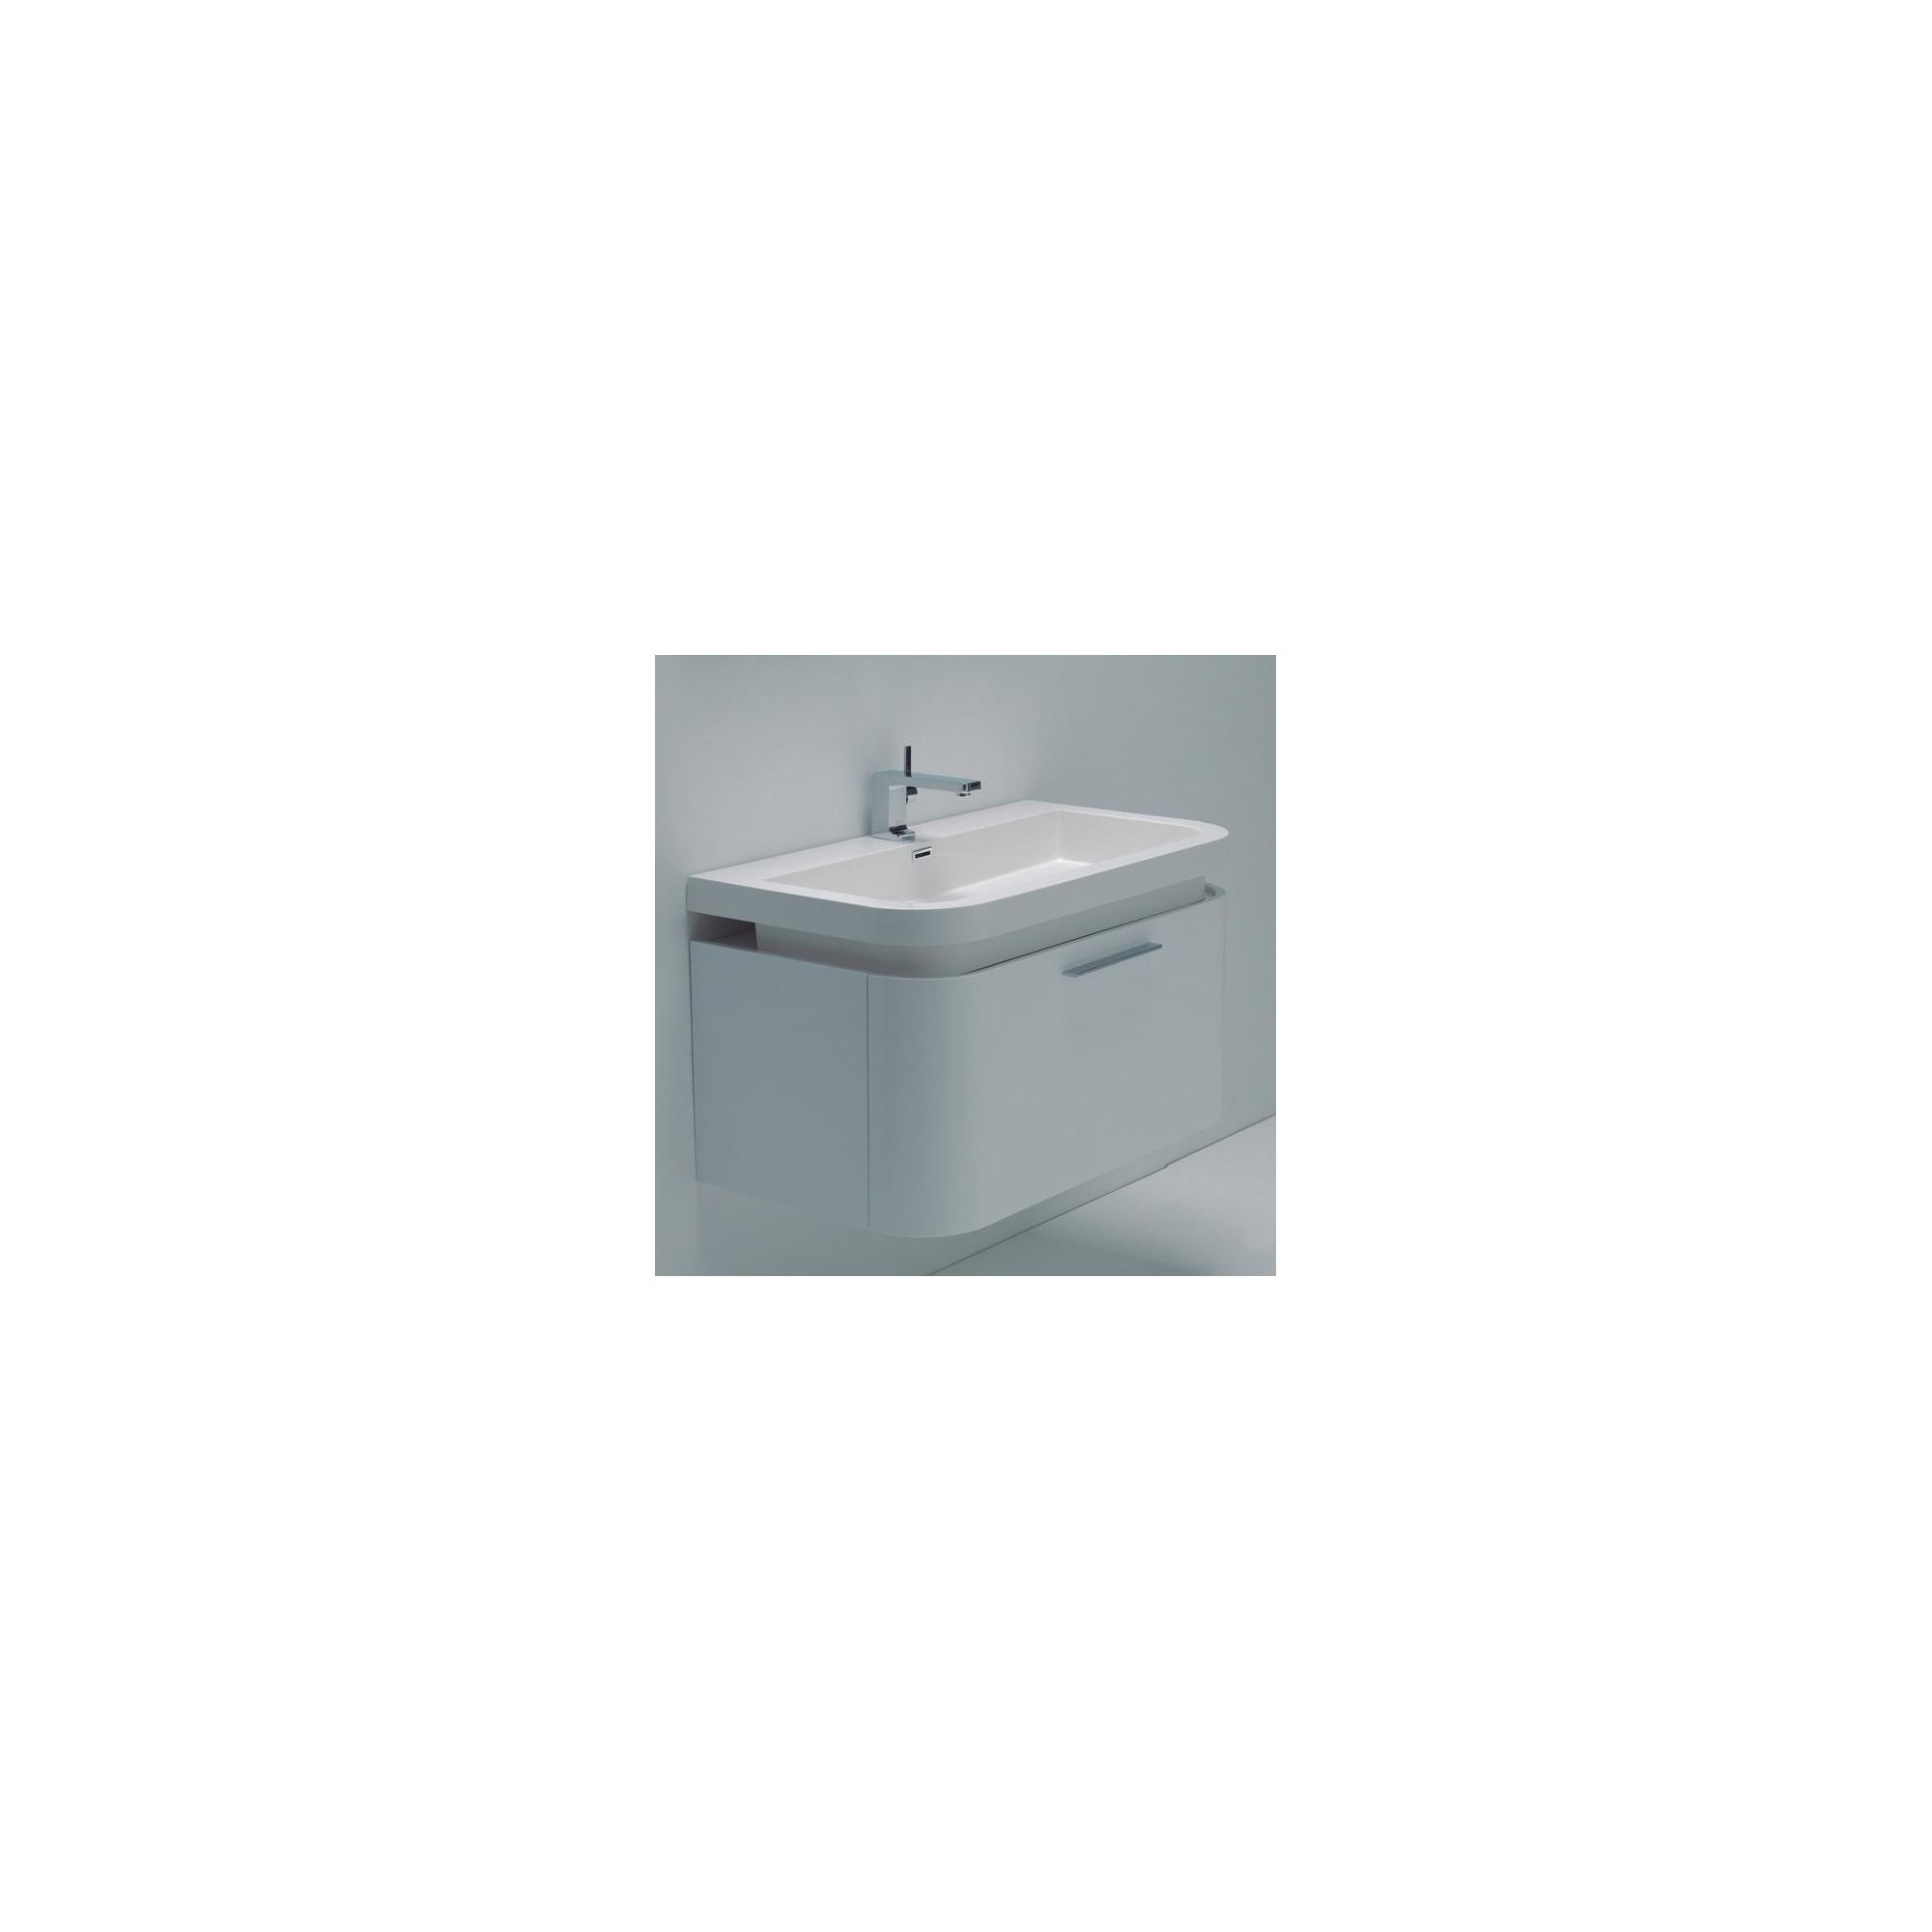 Durab Sienna Bathroom WHITE Vanity Unit (Wall Mounted) including Basin 900mm Wide x 500mm Deep